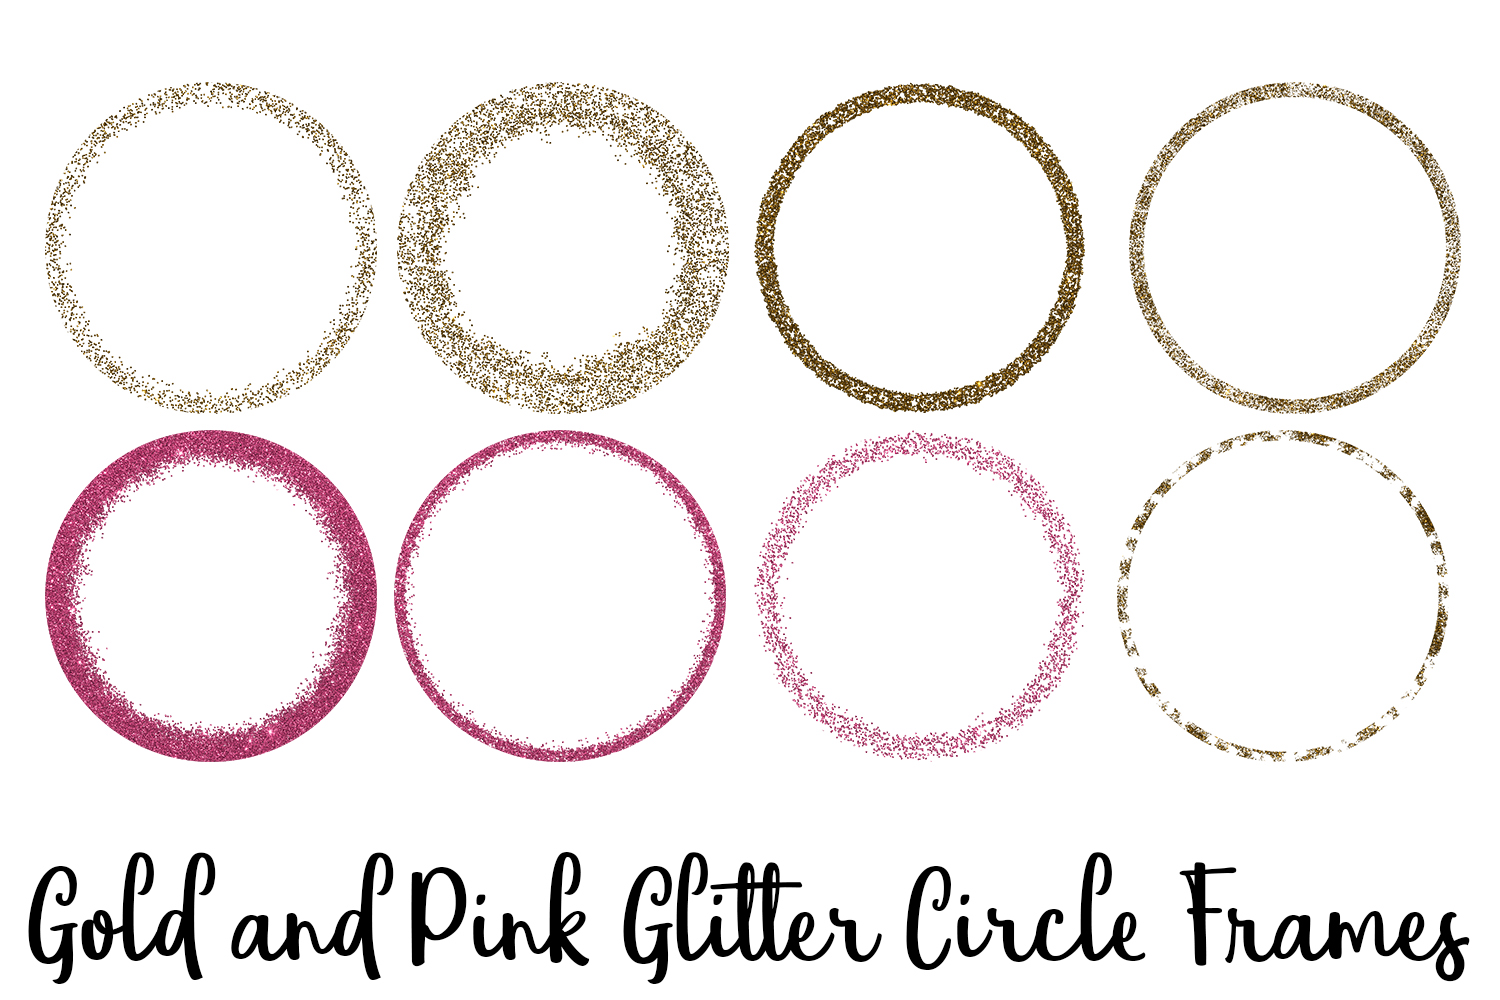 Gold and Pink Glitter Circle Frames Clip Art example image 1